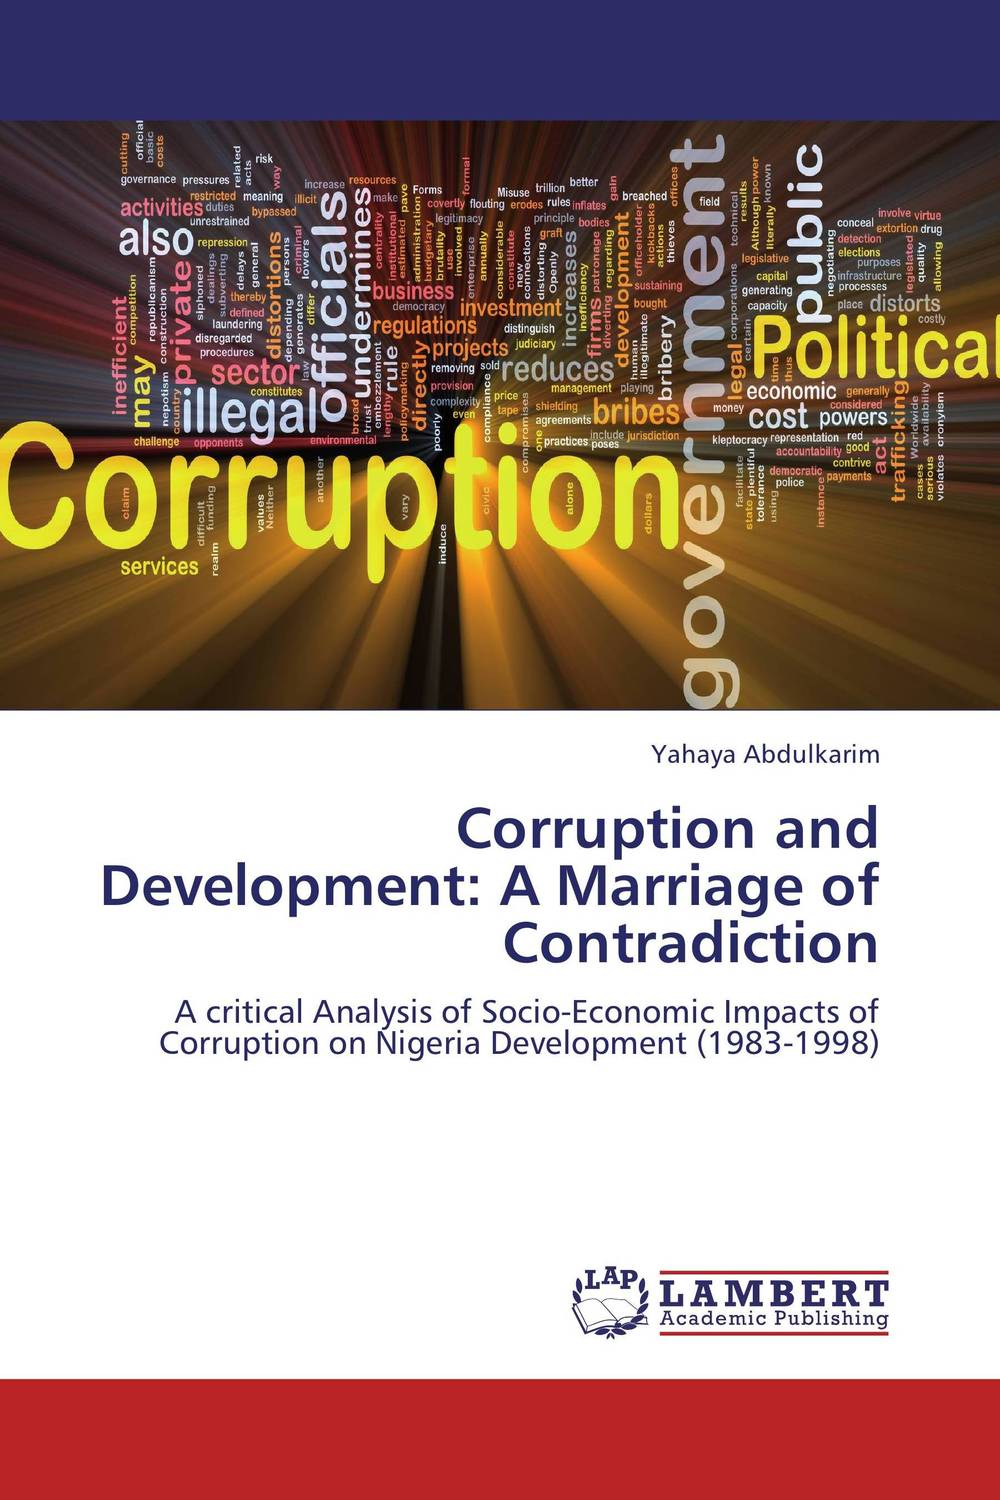 купить Corruption and Development: A Marriage of Contradiction недорого